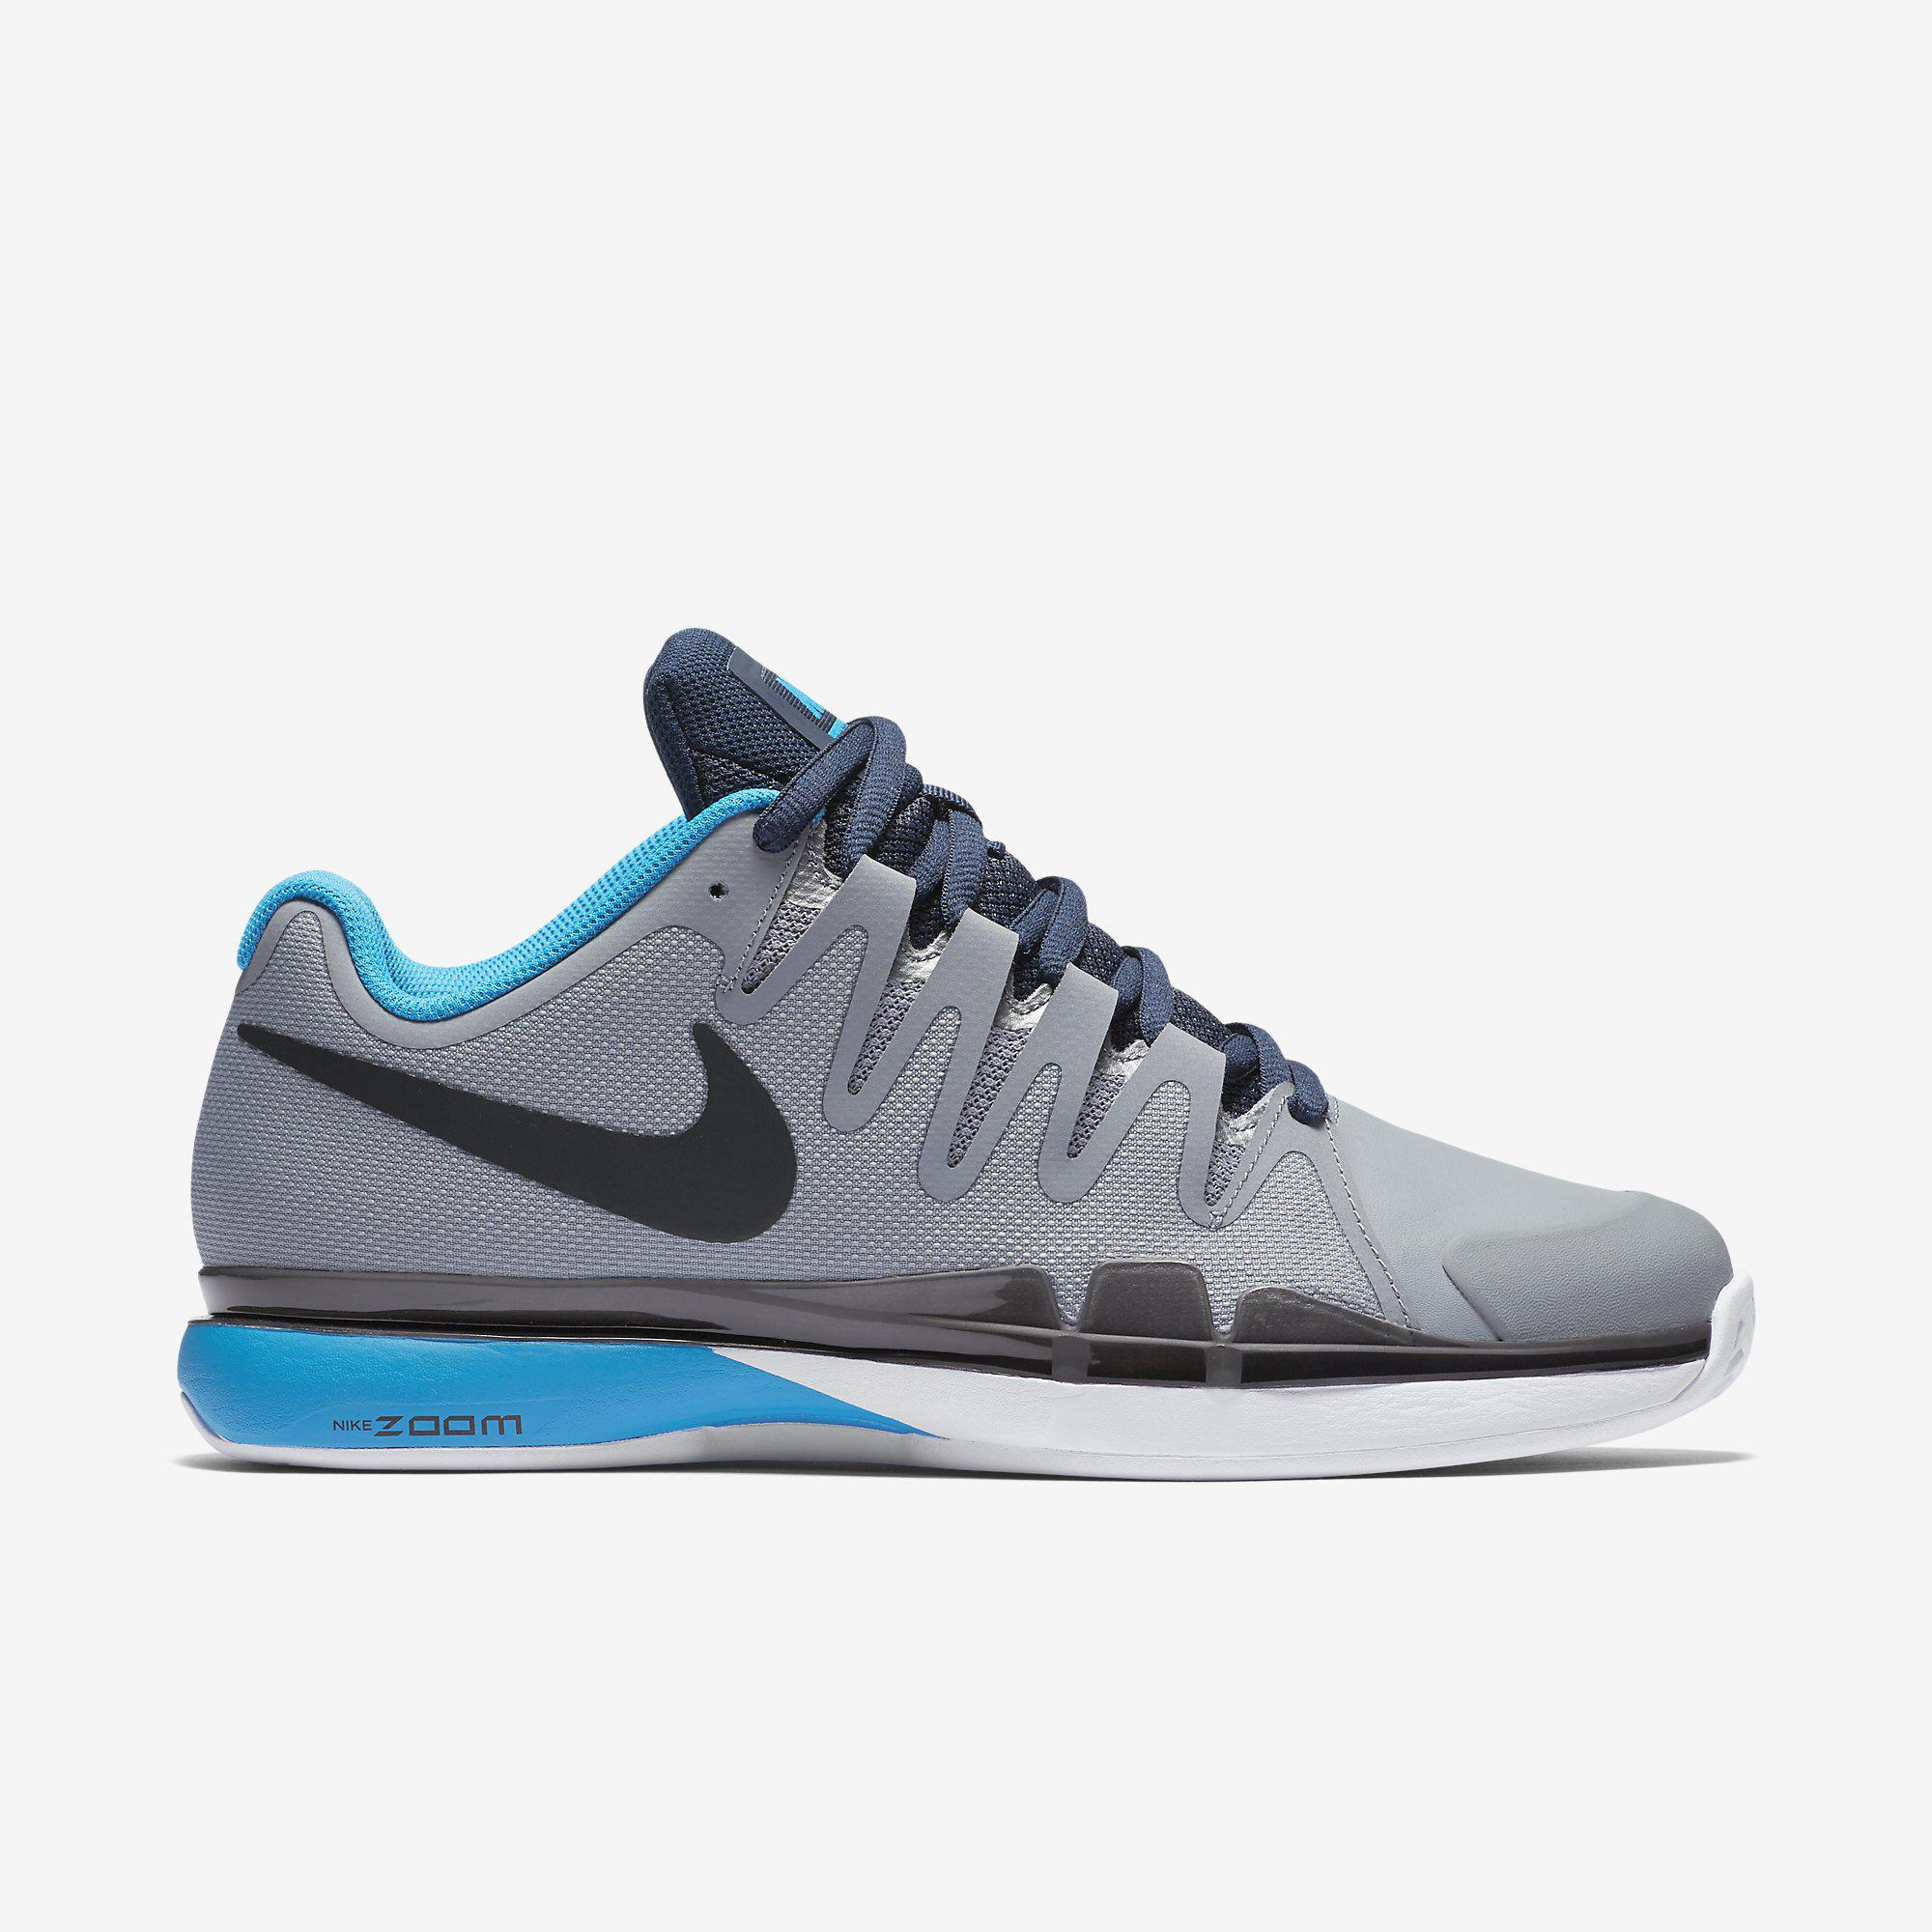 Mens Nike Free Shoes For Sale